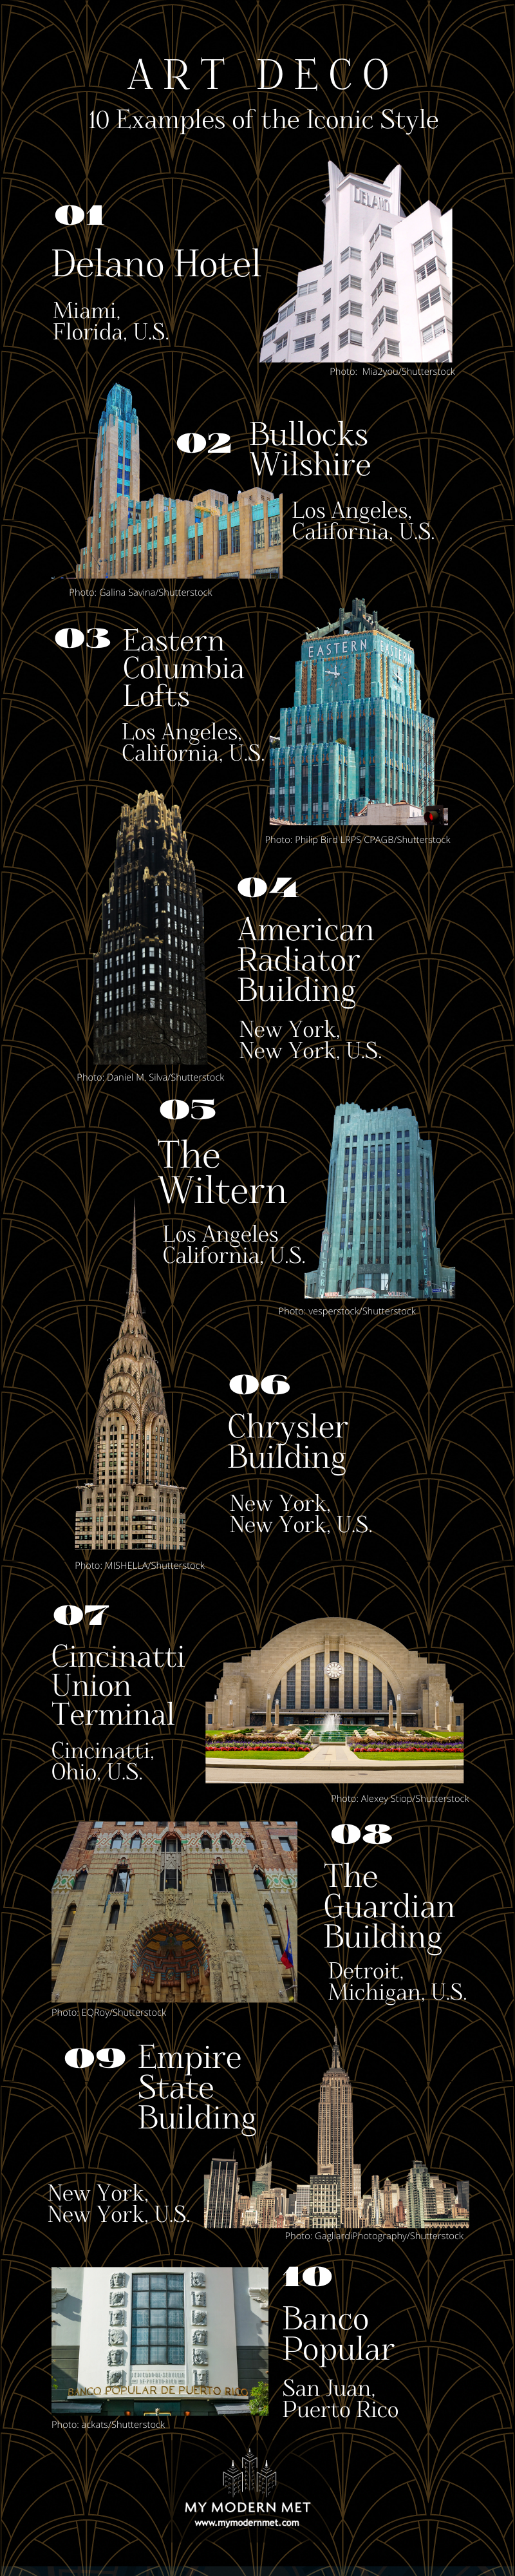 Art Deco Architecture Infographic on My Modern Met